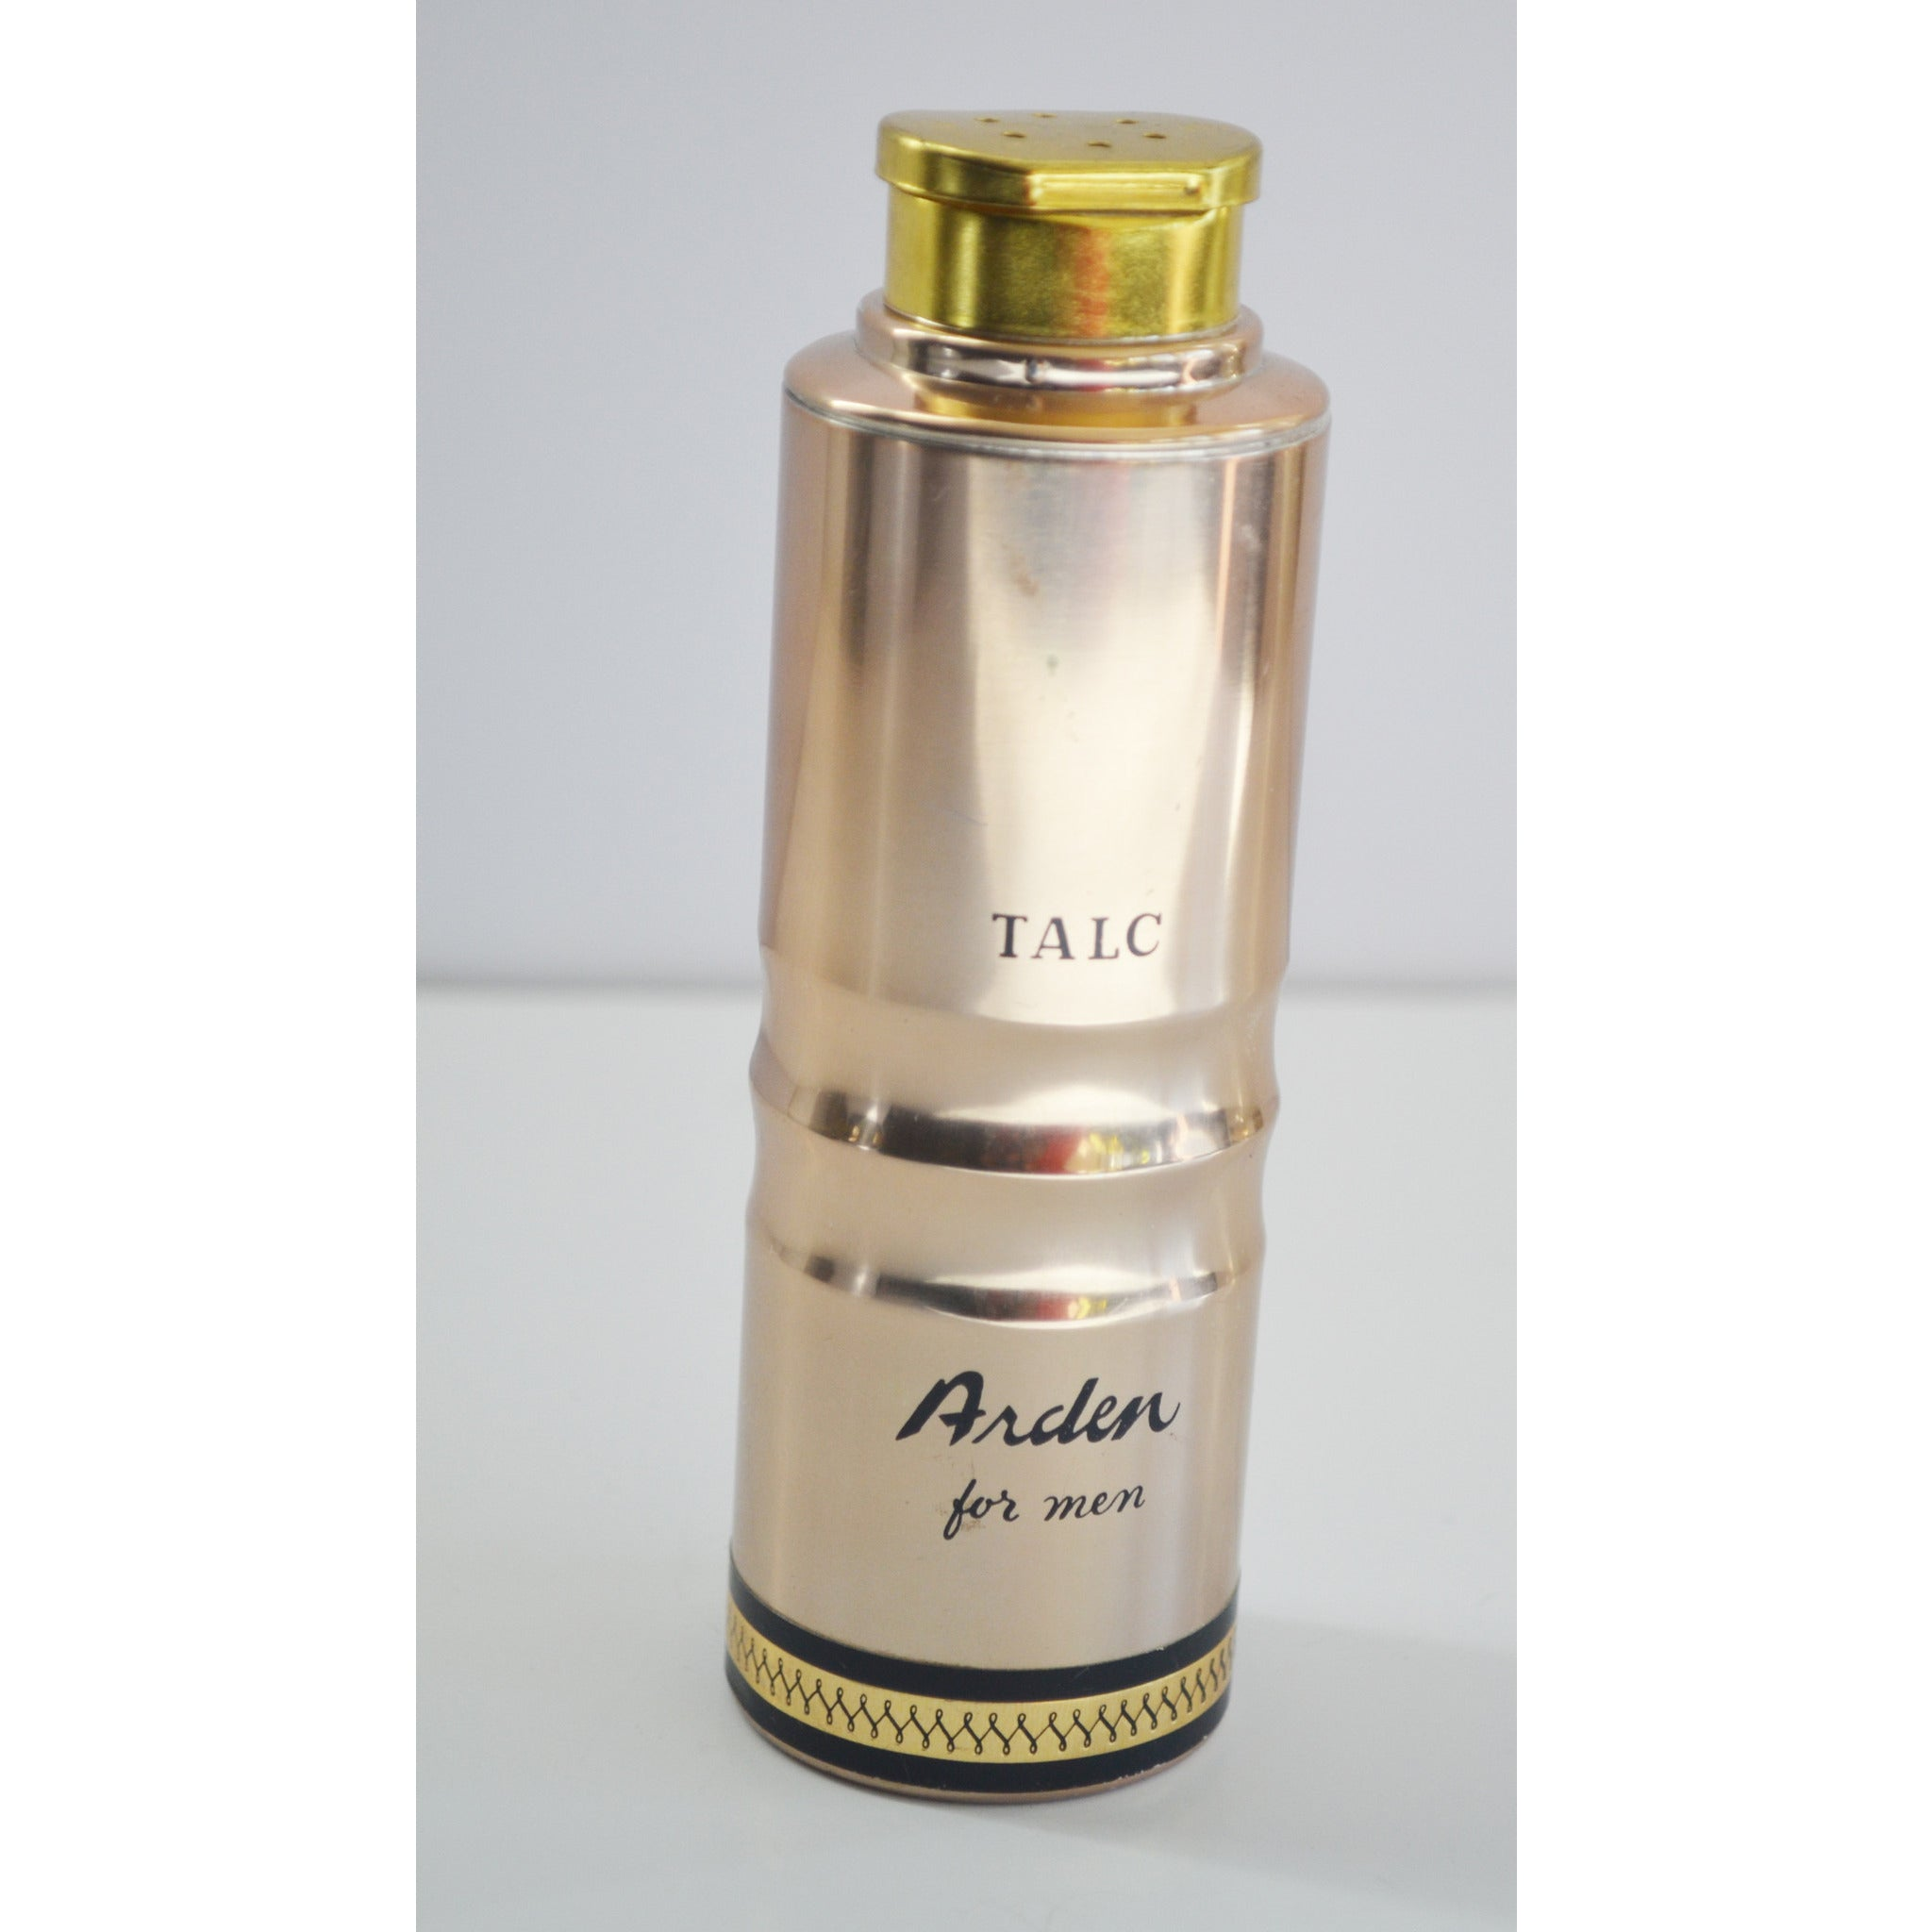 Vintage Arden For Men Talc By Elizabeth Arden